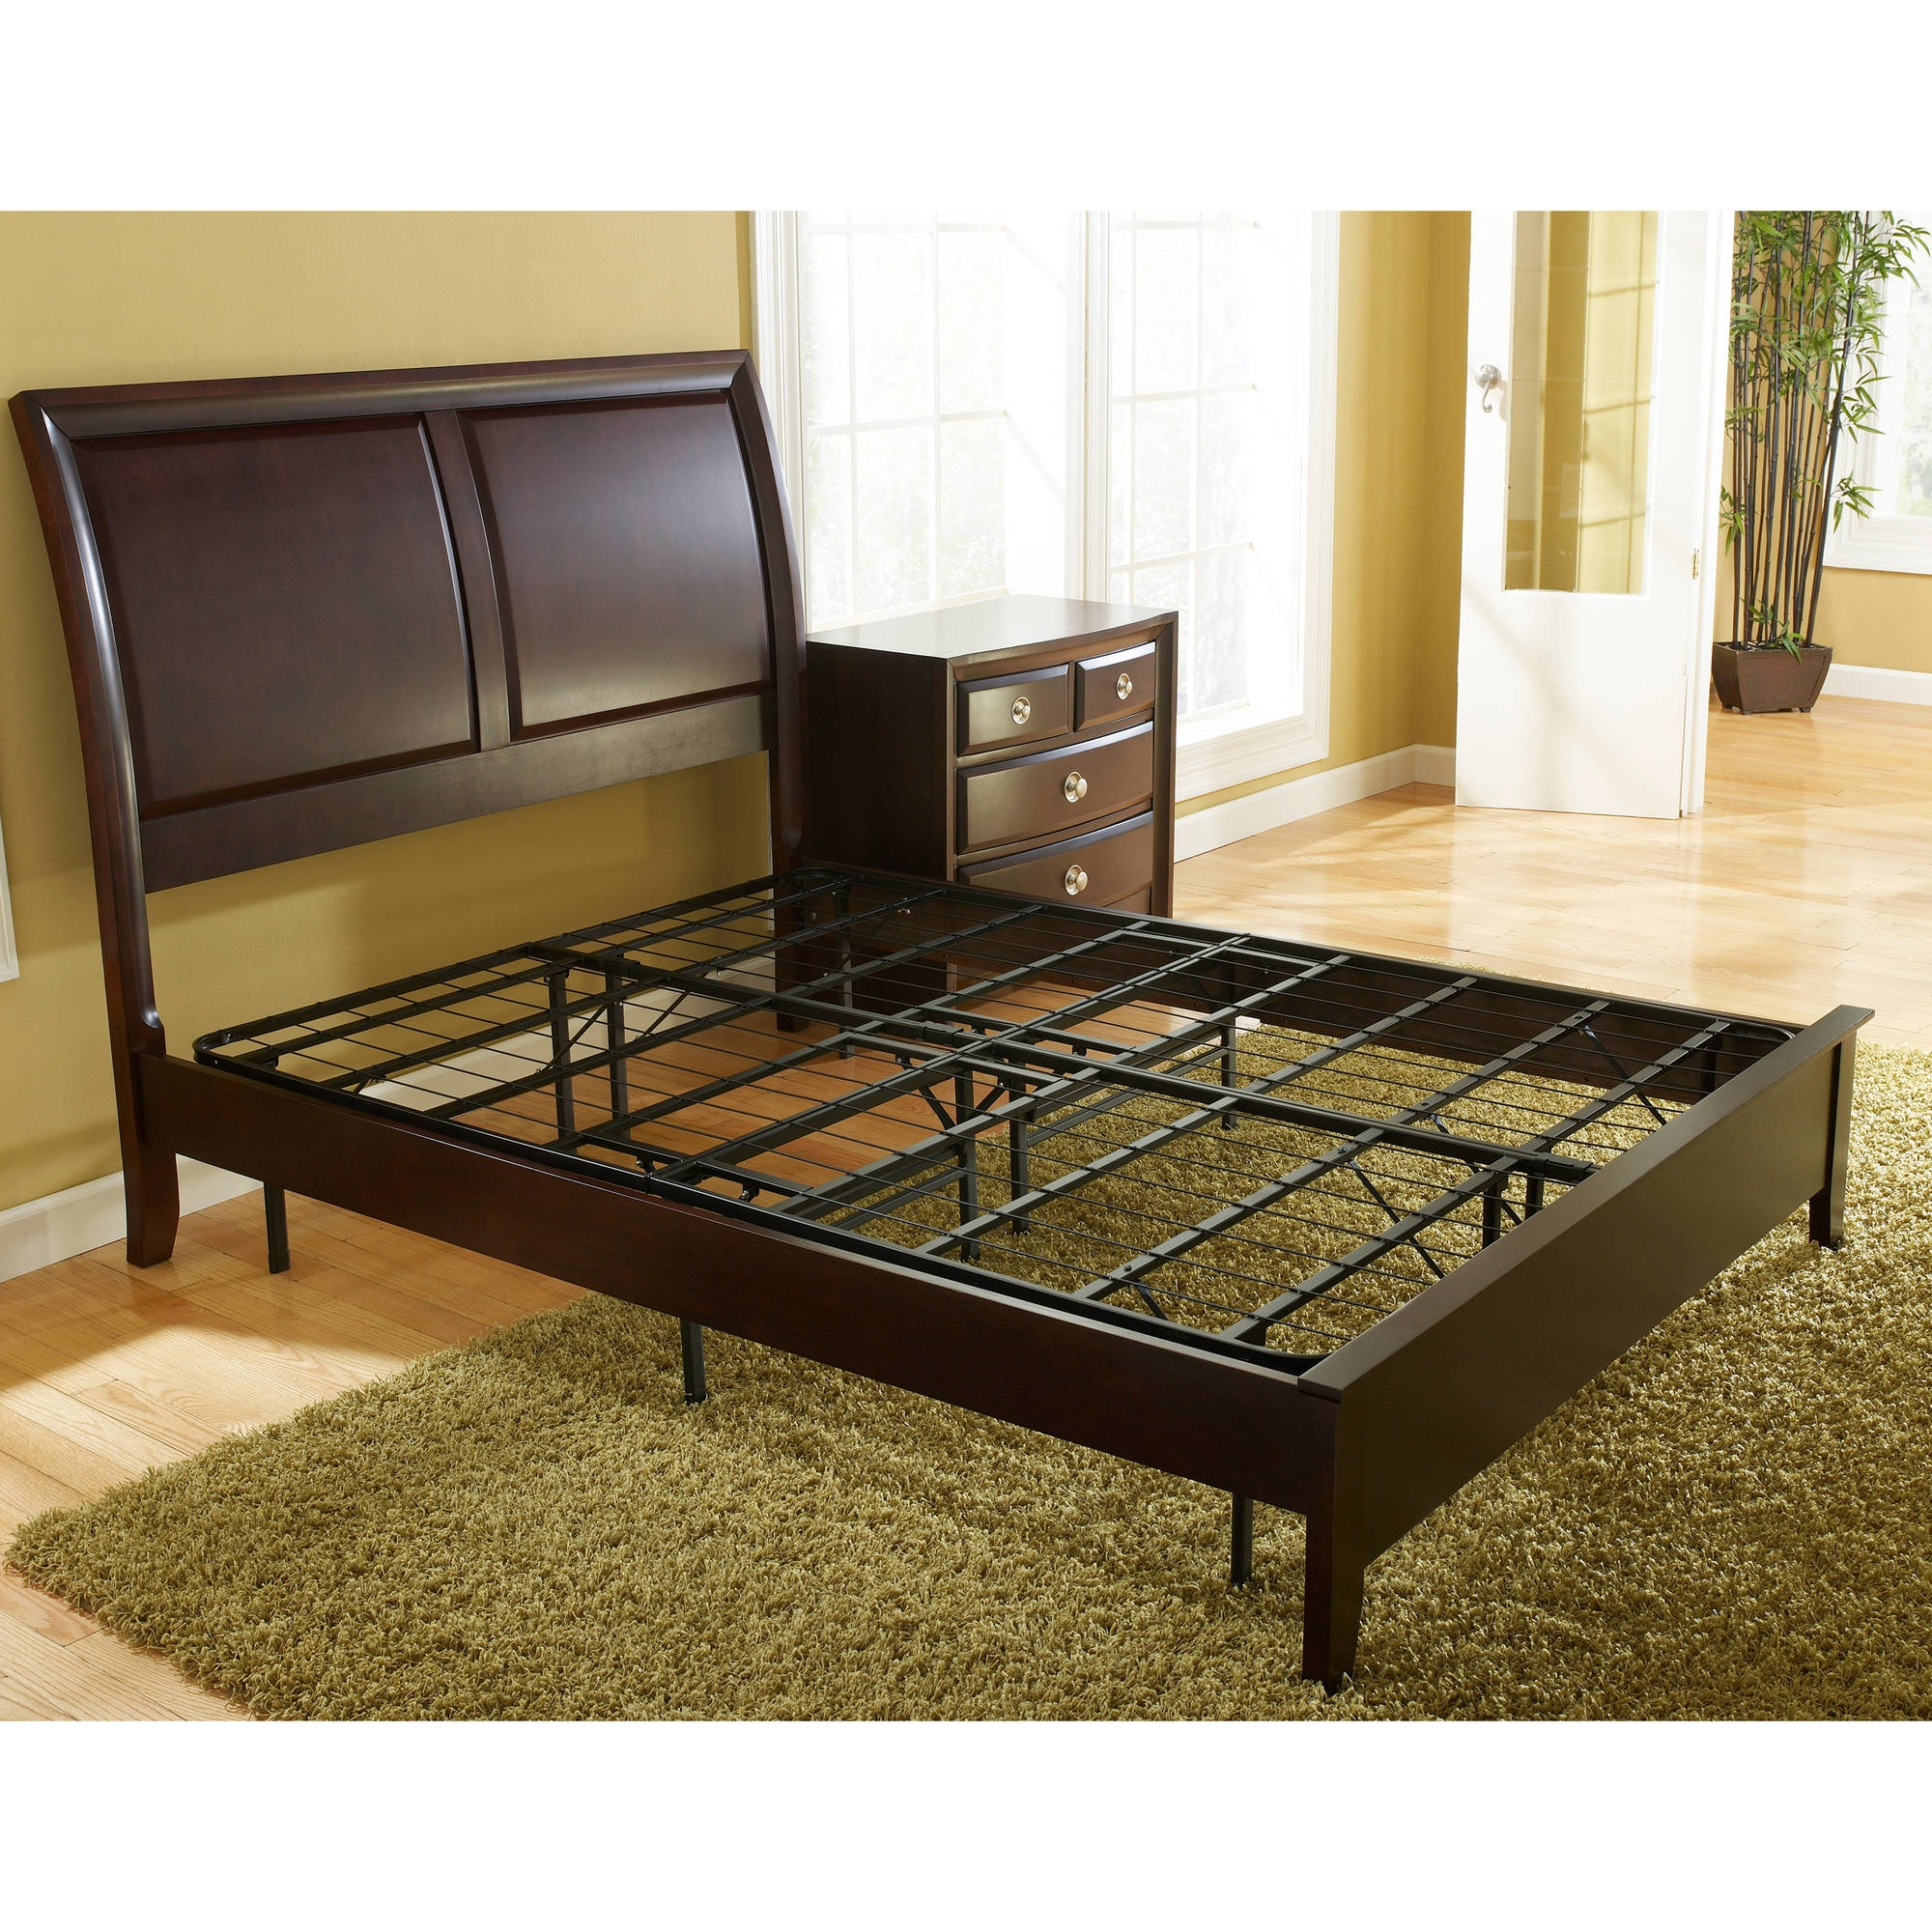 Permalink to Queen Bed Frame With Headboard And Footboard Brackets